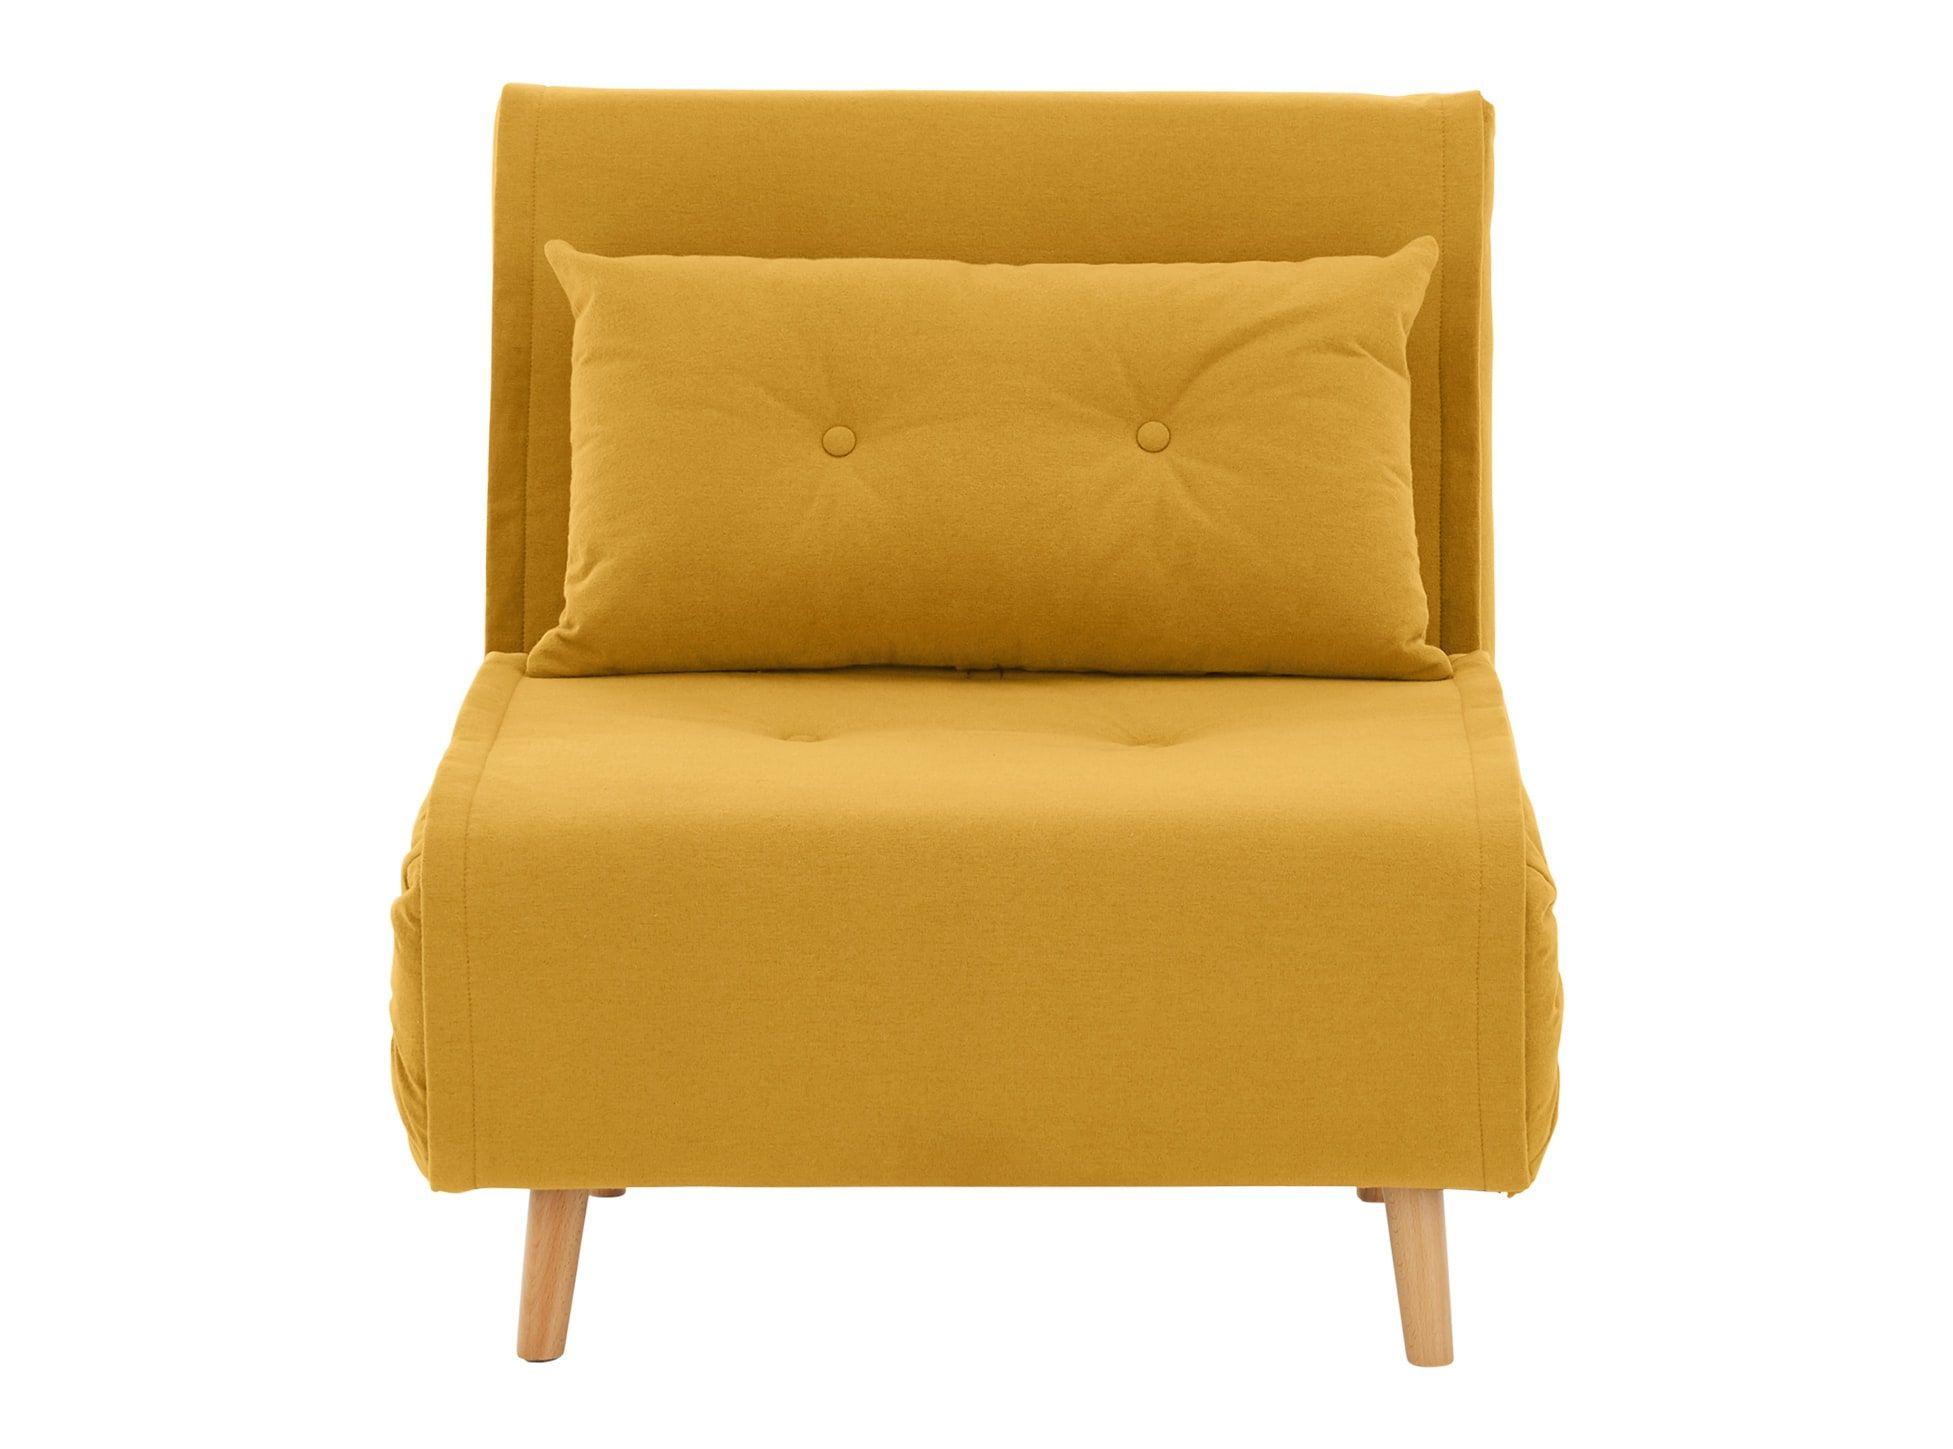 Fabulous Made Butter Yellow Sofa Bed In 2019 Single Sofa Sofa Bed Onthecornerstone Fun Painted Chair Ideas Images Onthecornerstoneorg